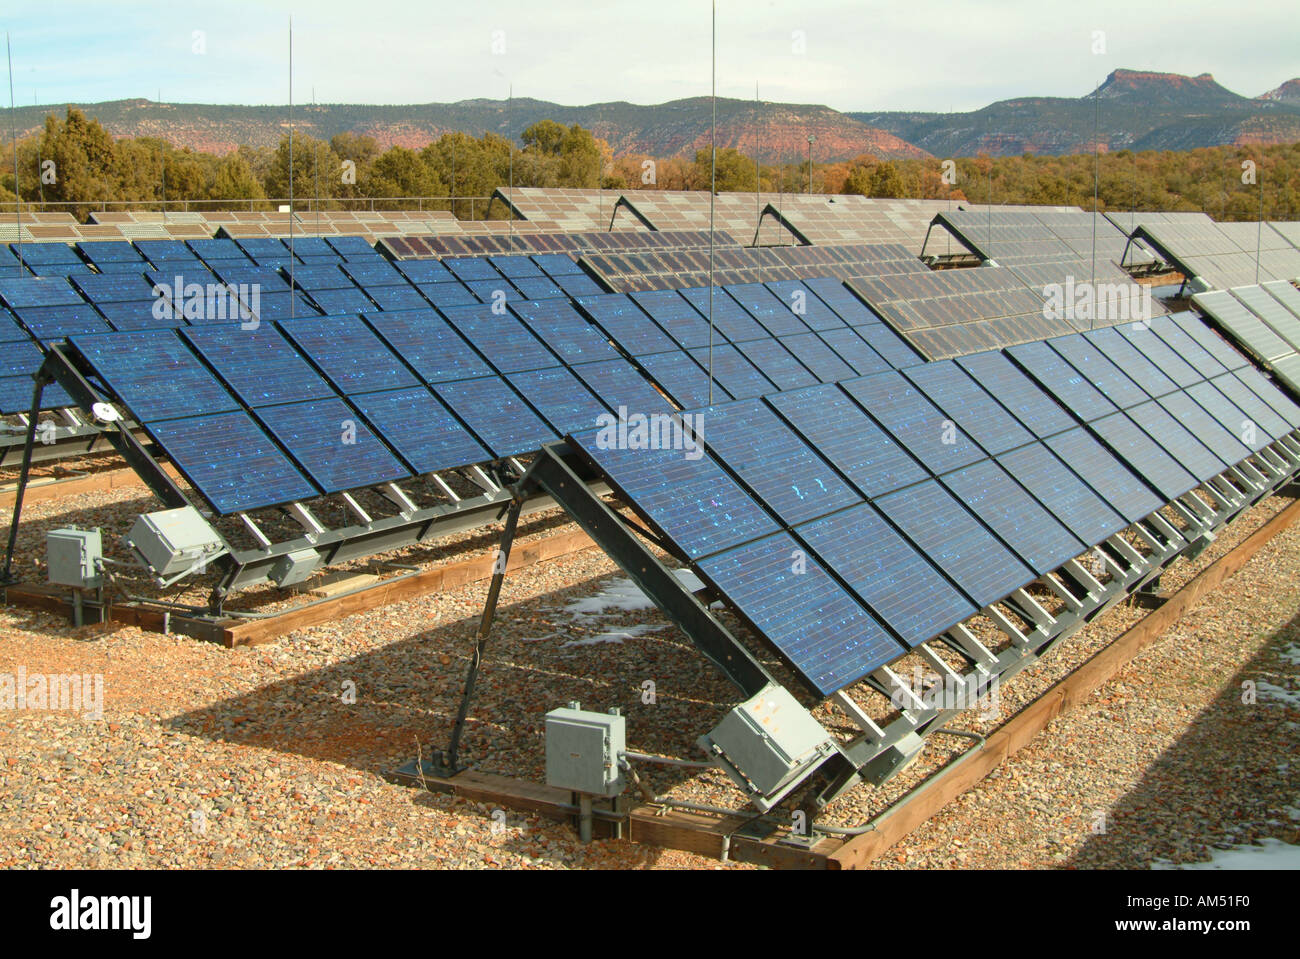 A large array of Photo Voltaic Solar Panels - Stock Image